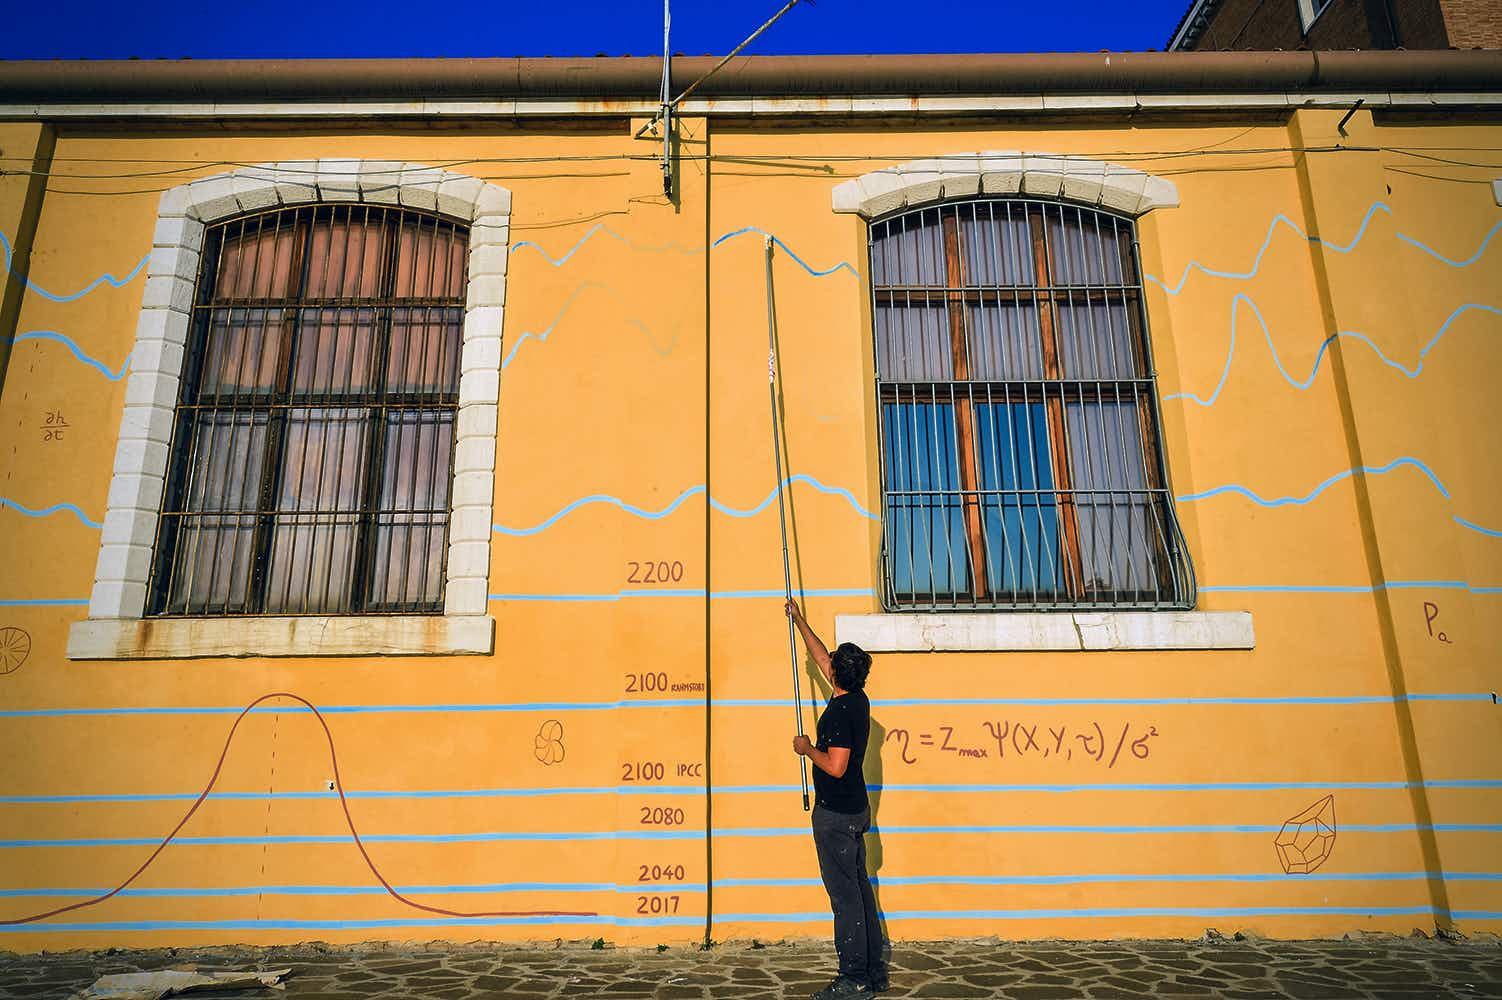 Artist uses façade of dockside building in Venice to address climate change